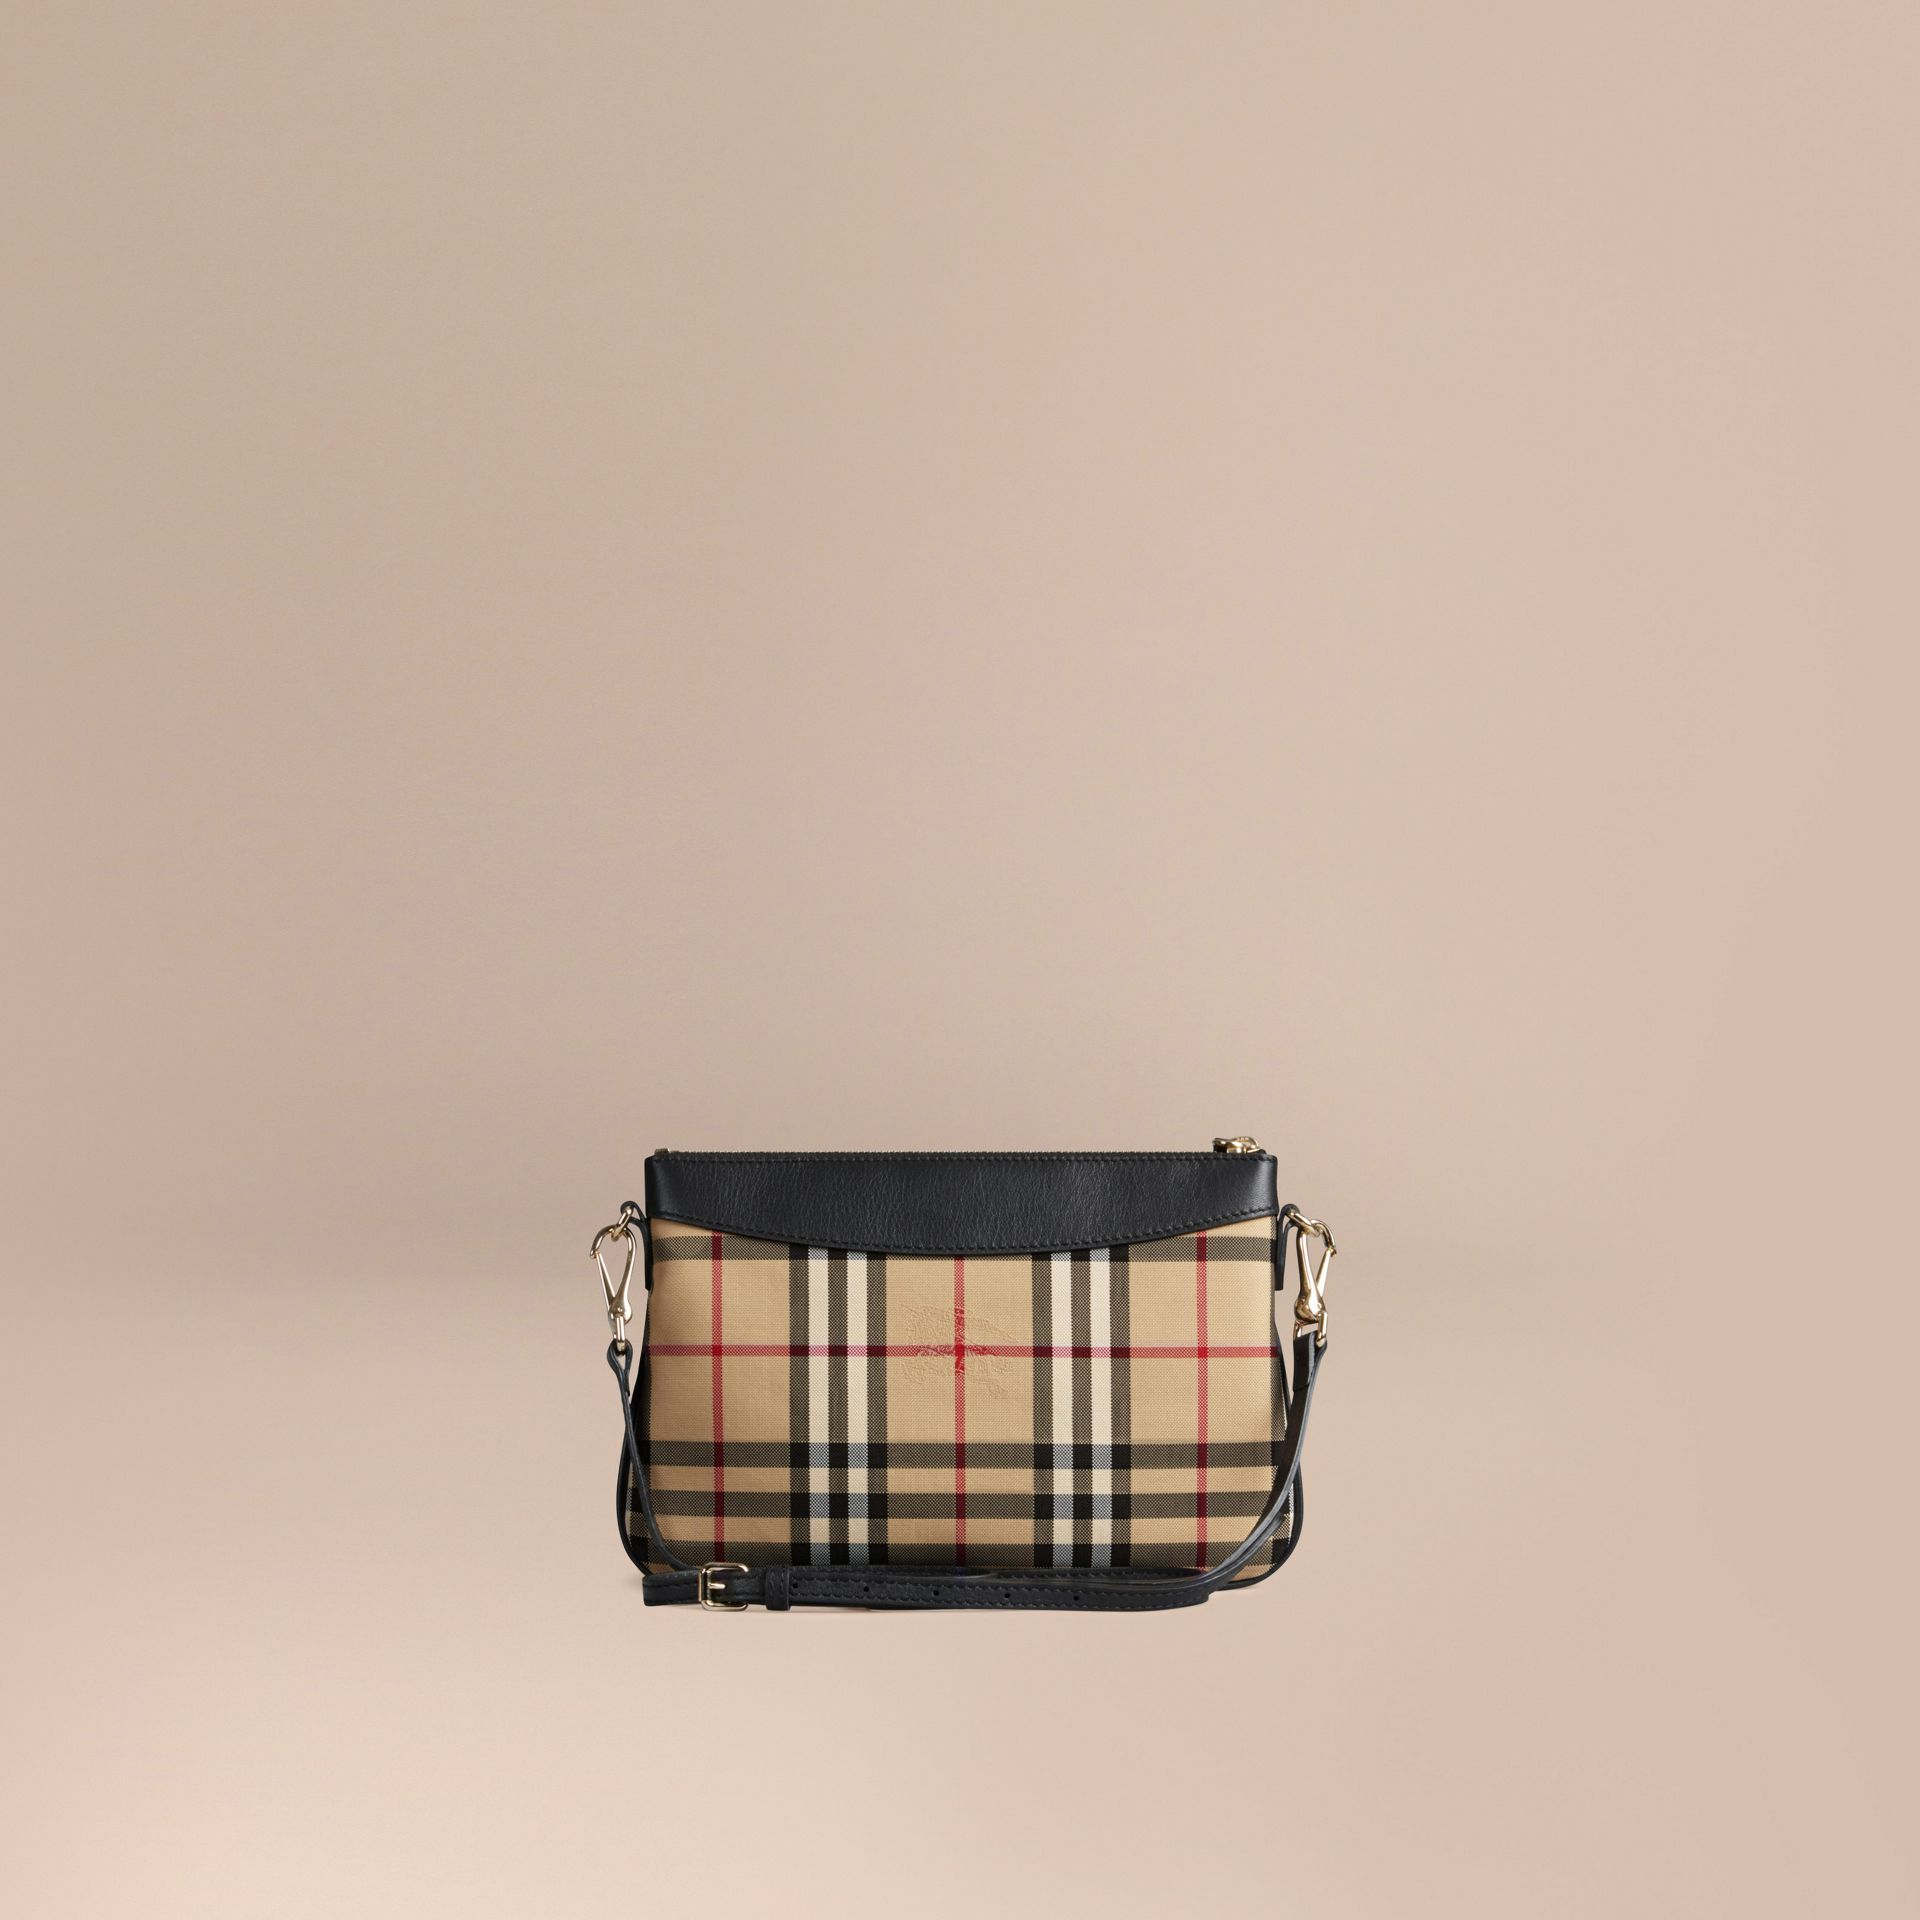 Horseferry Check and Leather Clutch Bag in Black - Women | Burberry - gallery image 5